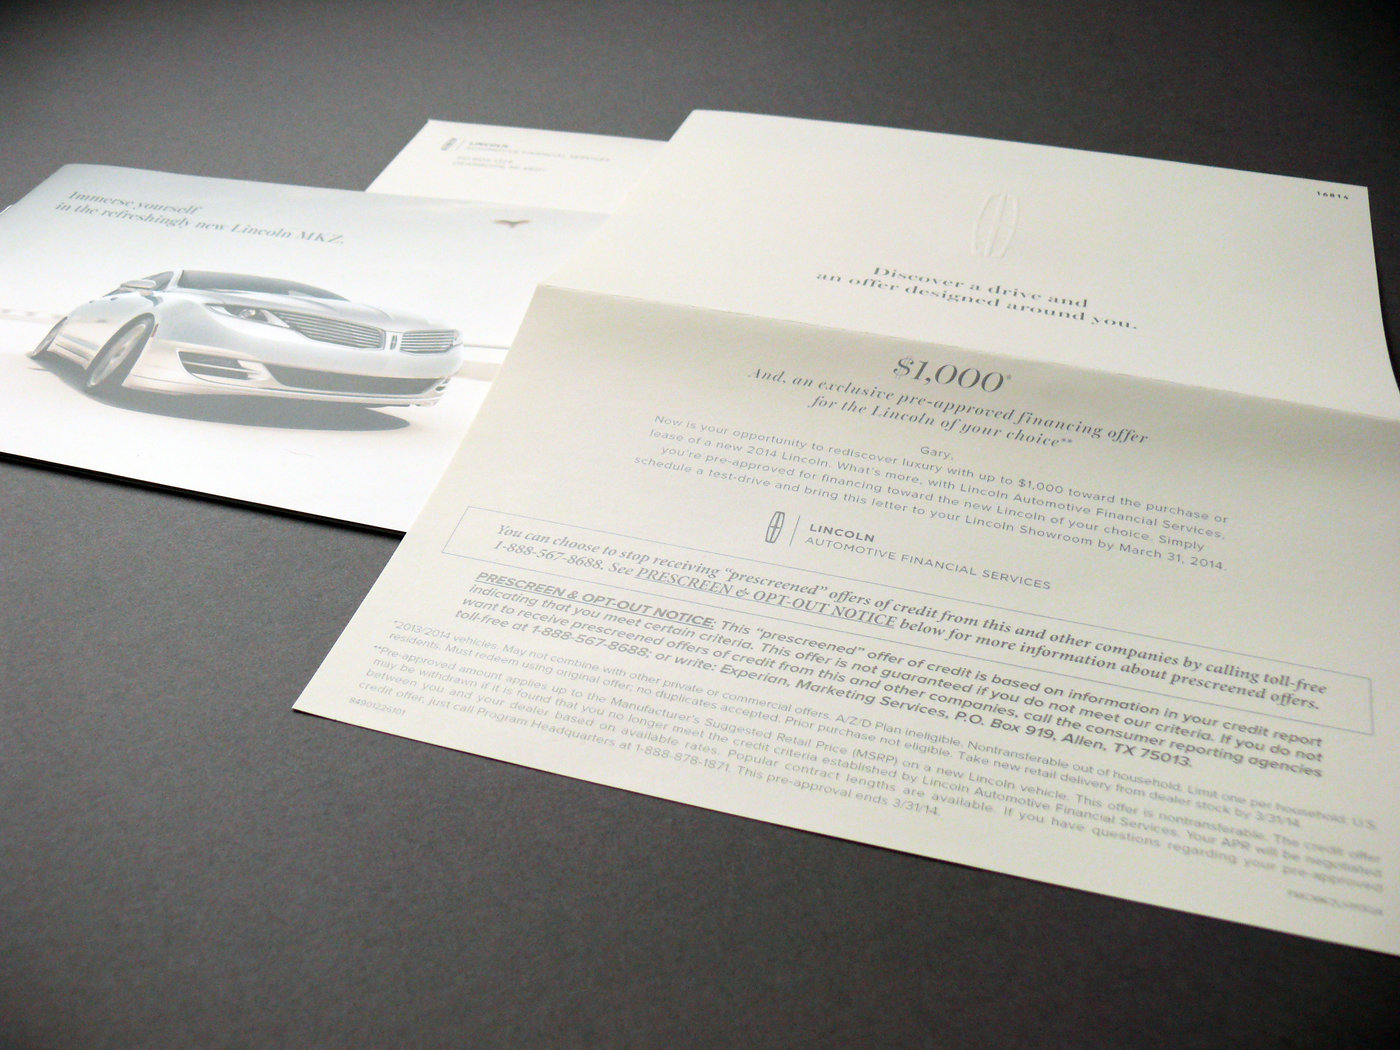 Lincoln Automotive Financial Services Direct Mailer By Izabela